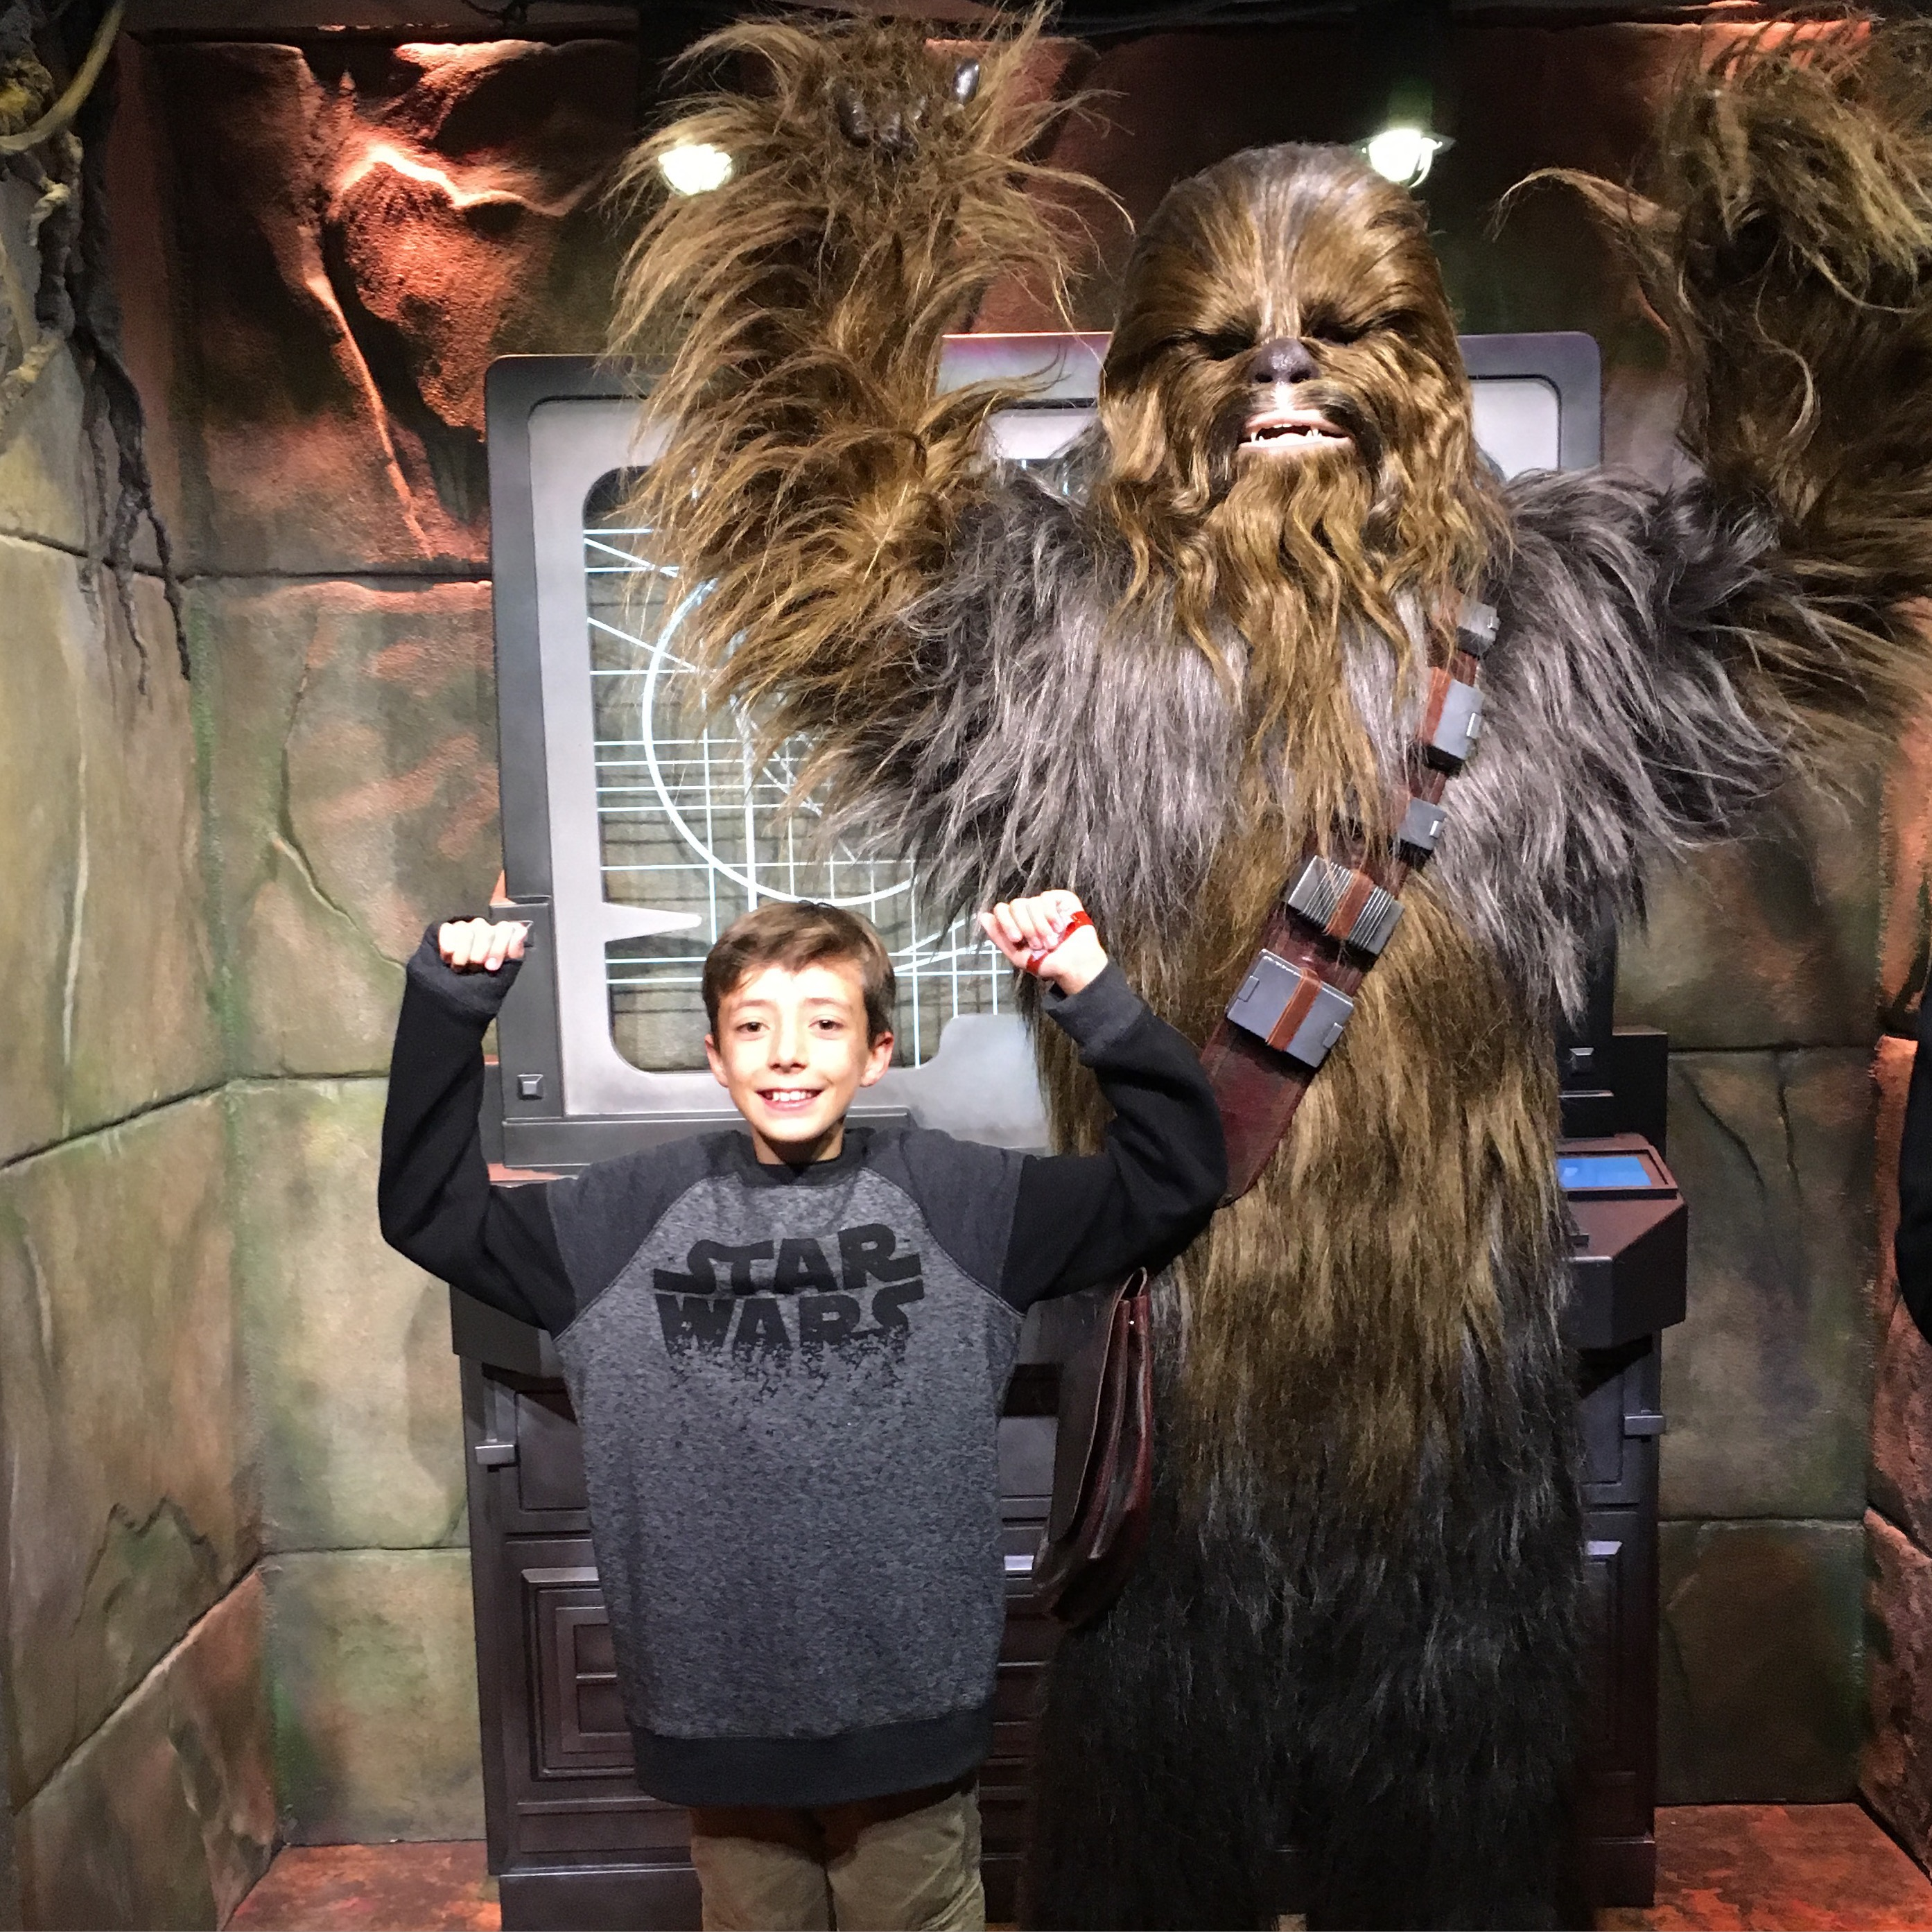 Star wars launch bay at disneyland the ultimate fan experience everything you need to know about star wars launch bay character meet greet kristyandbryce Choice Image